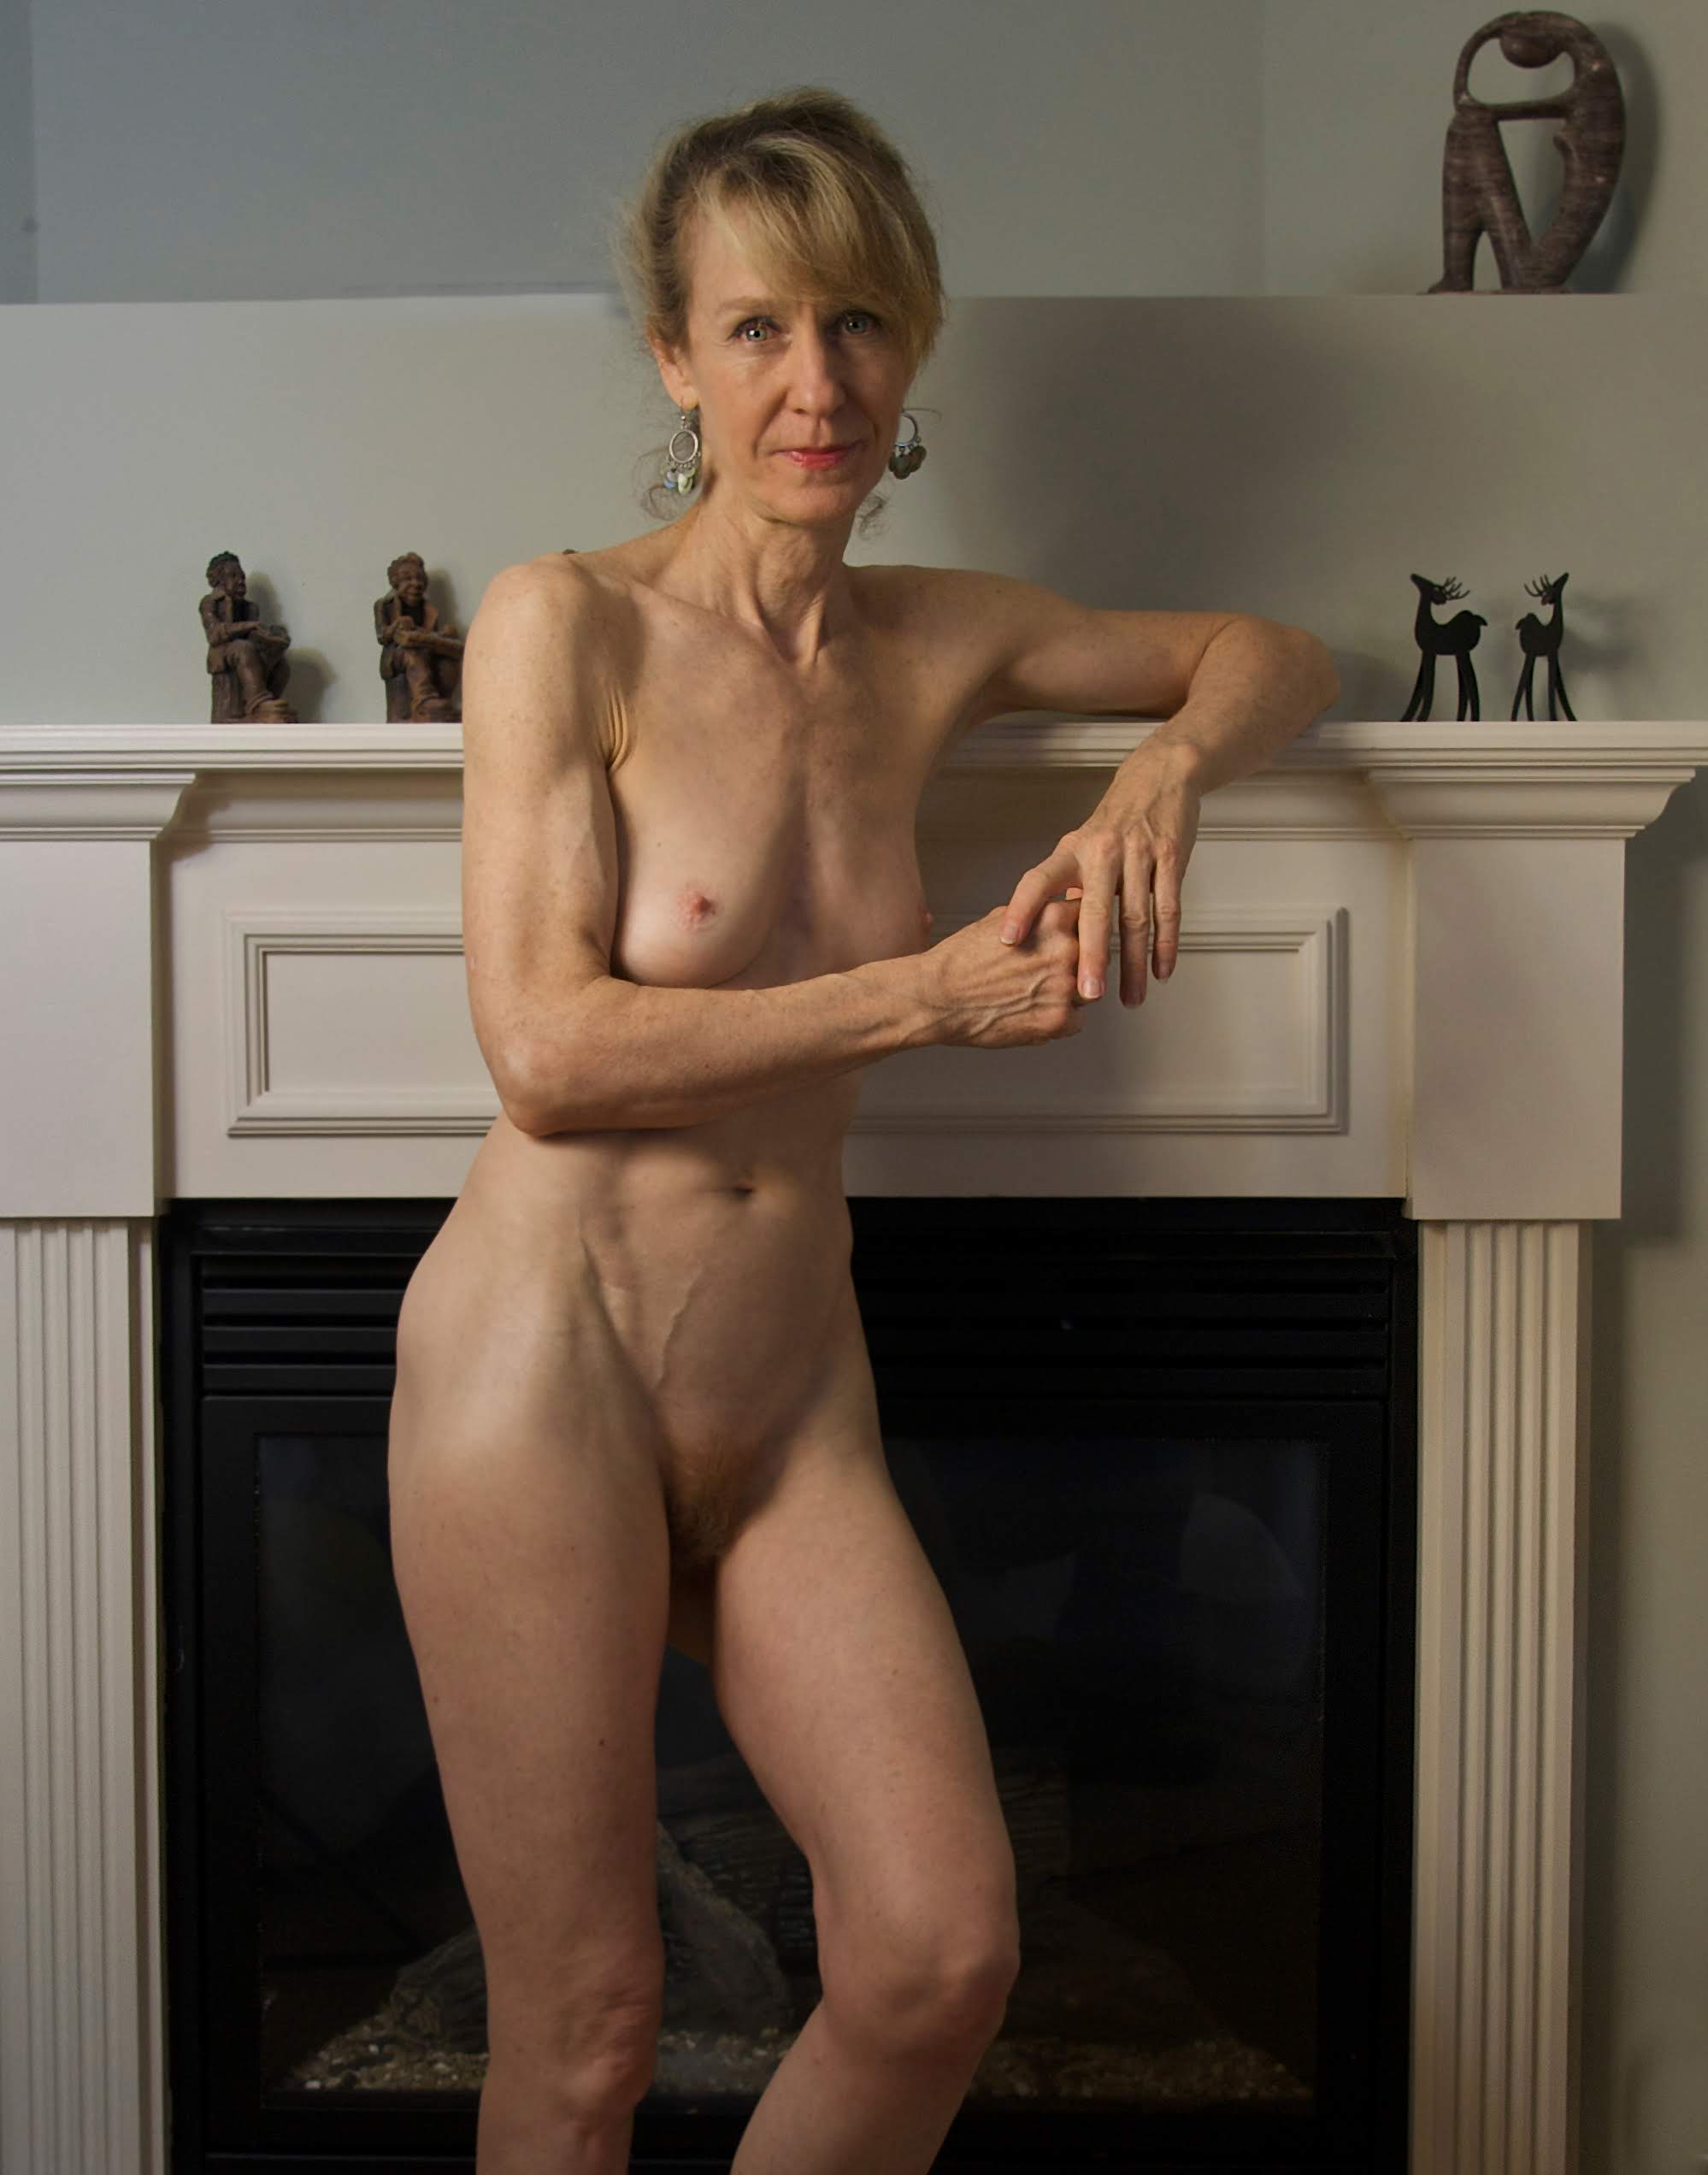 Very fit older woman at home